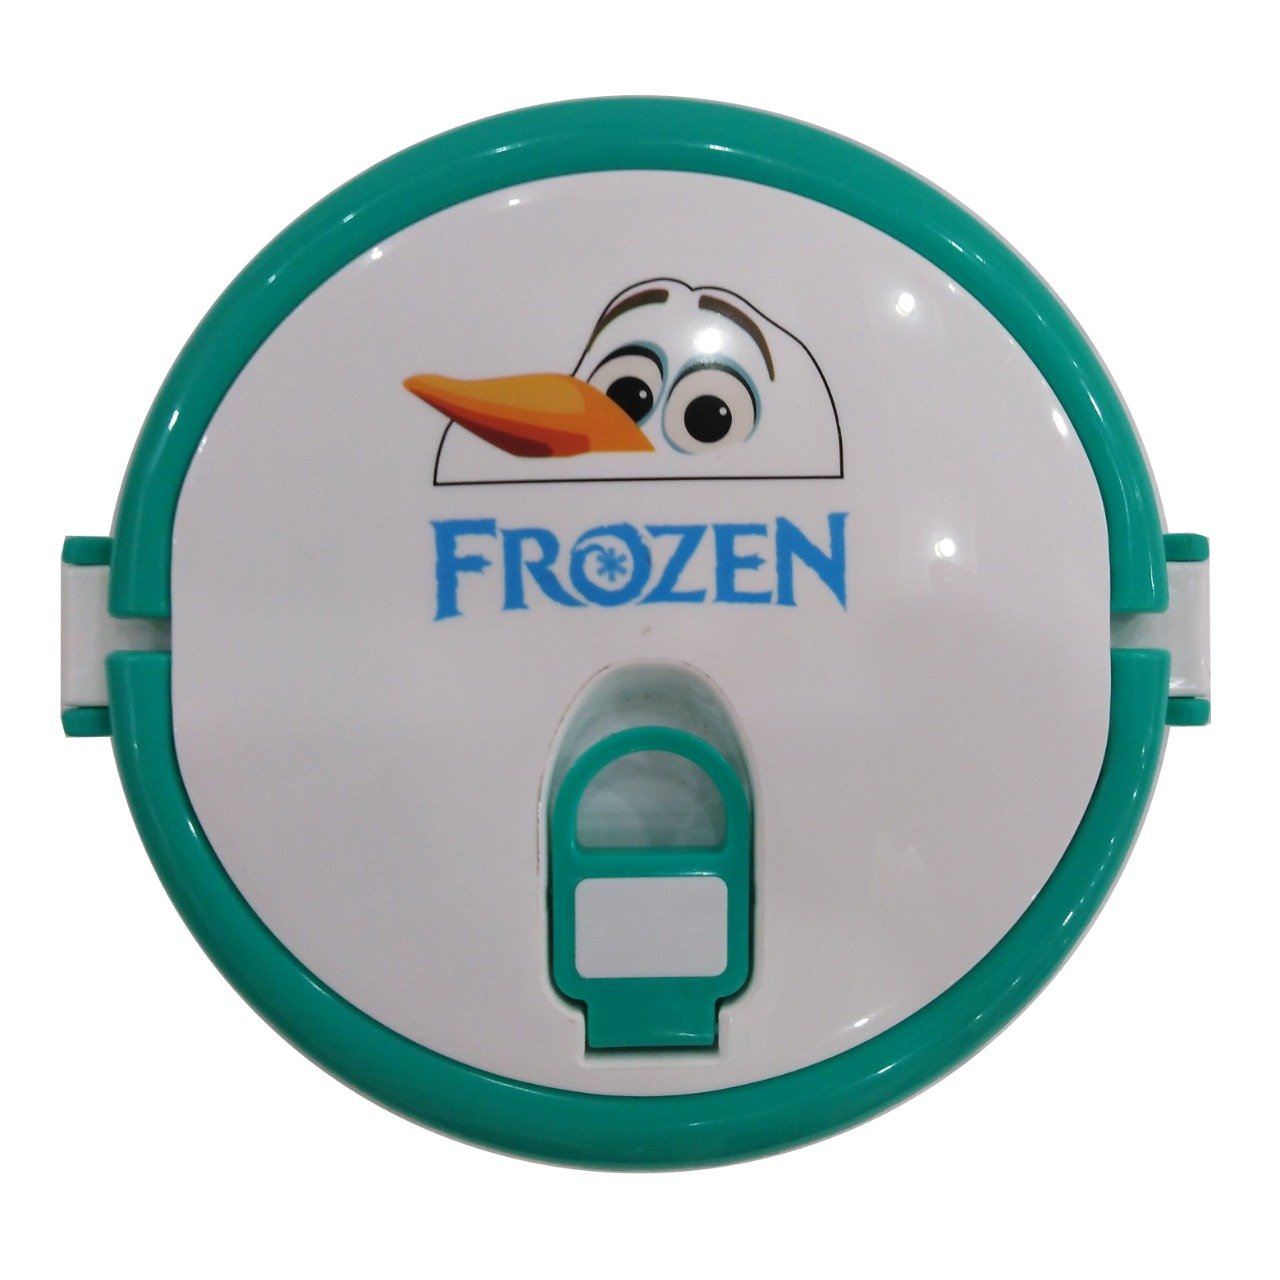 Frozen - Stainless Steel Lunch Box